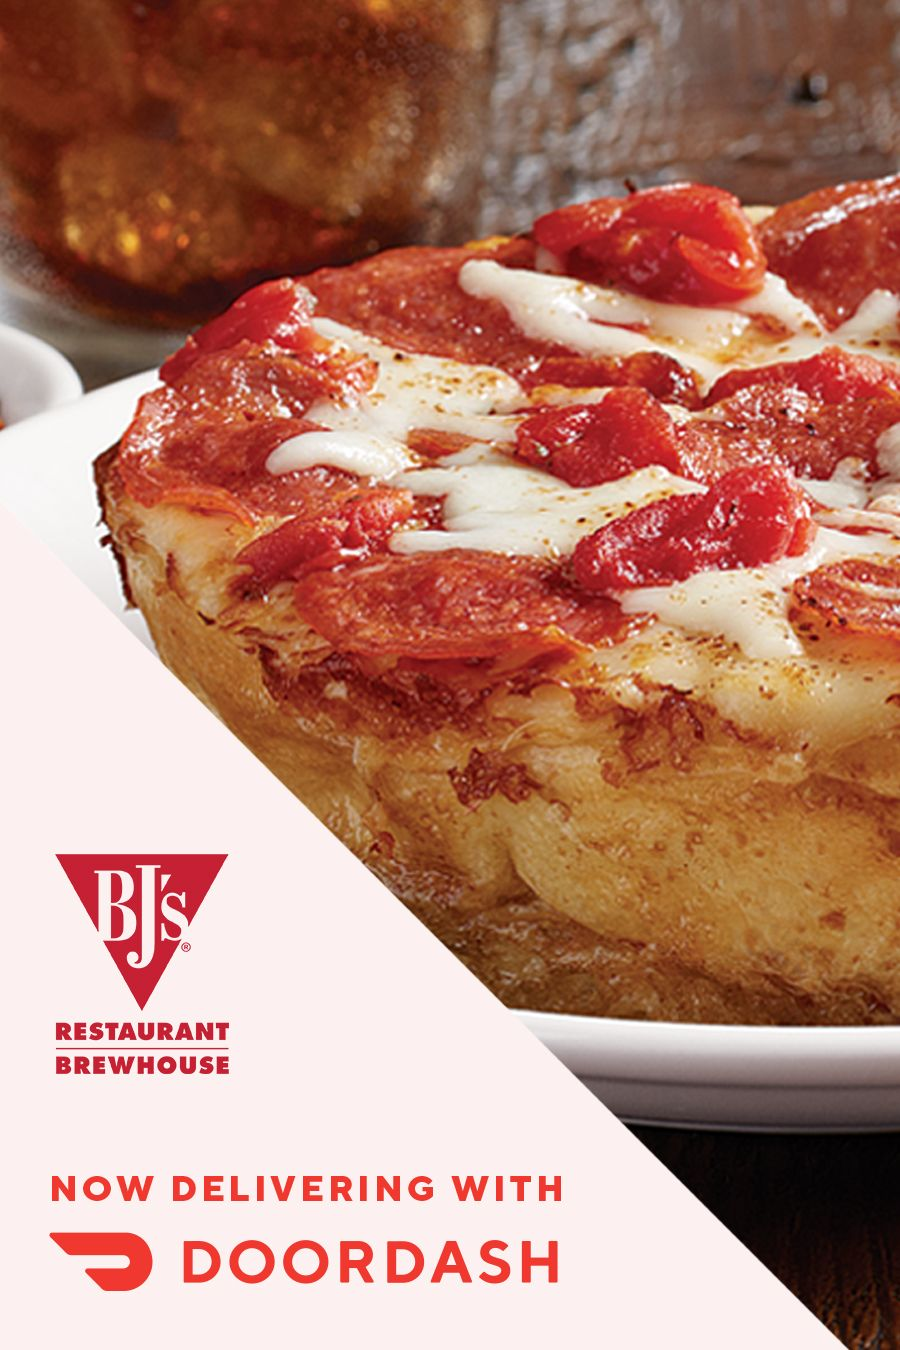 Doordash Offers A Selection Of More Than 250 000 Menus Across 3 000 Cities In The U S And Canada Get Your Favorite Restaura Dessert Recipes Easy Recipes Food